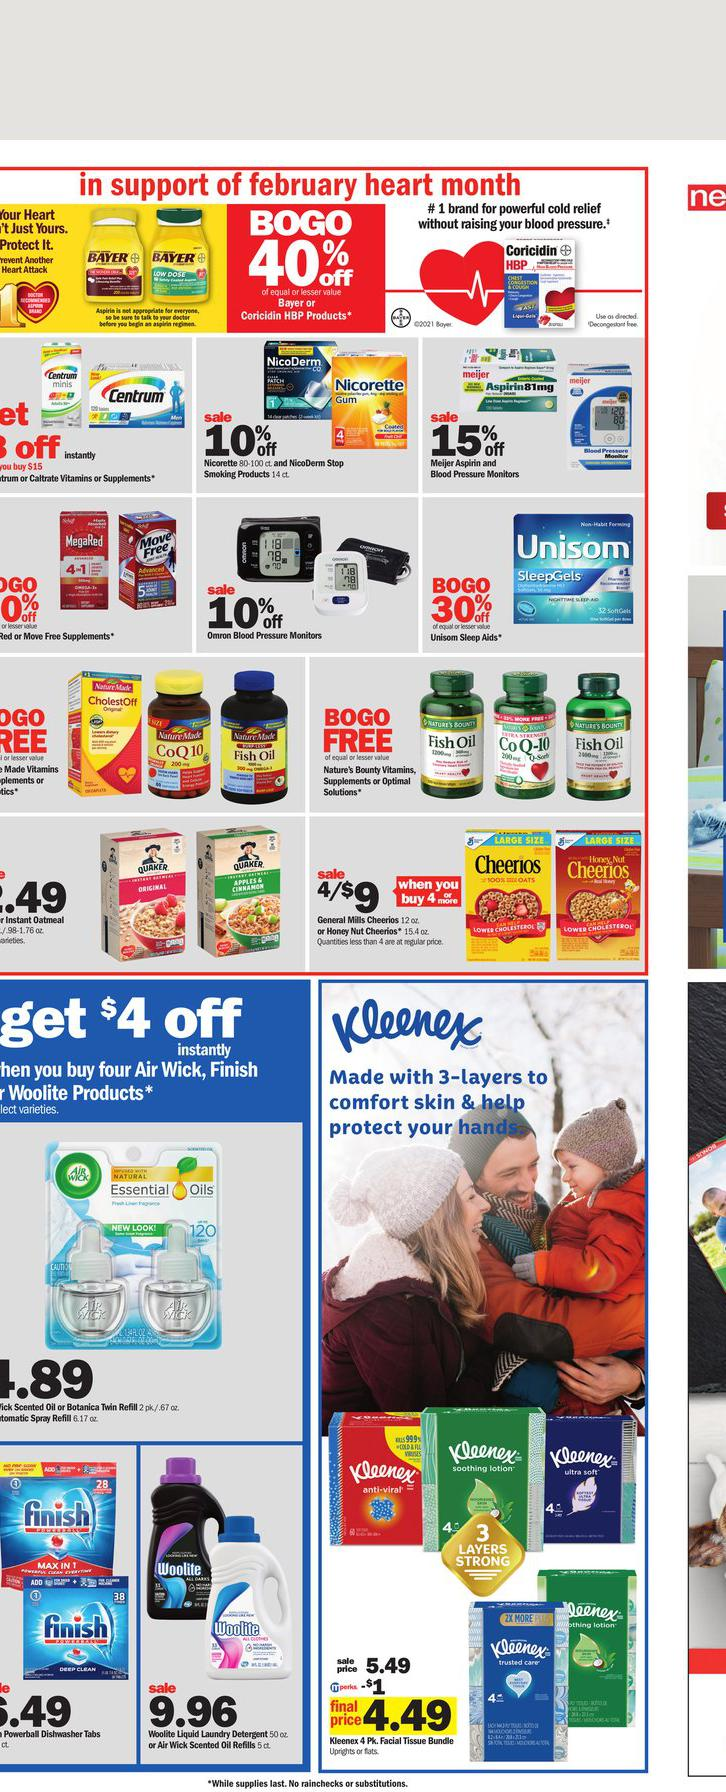 21.02.2021 Meijer ad 17. page